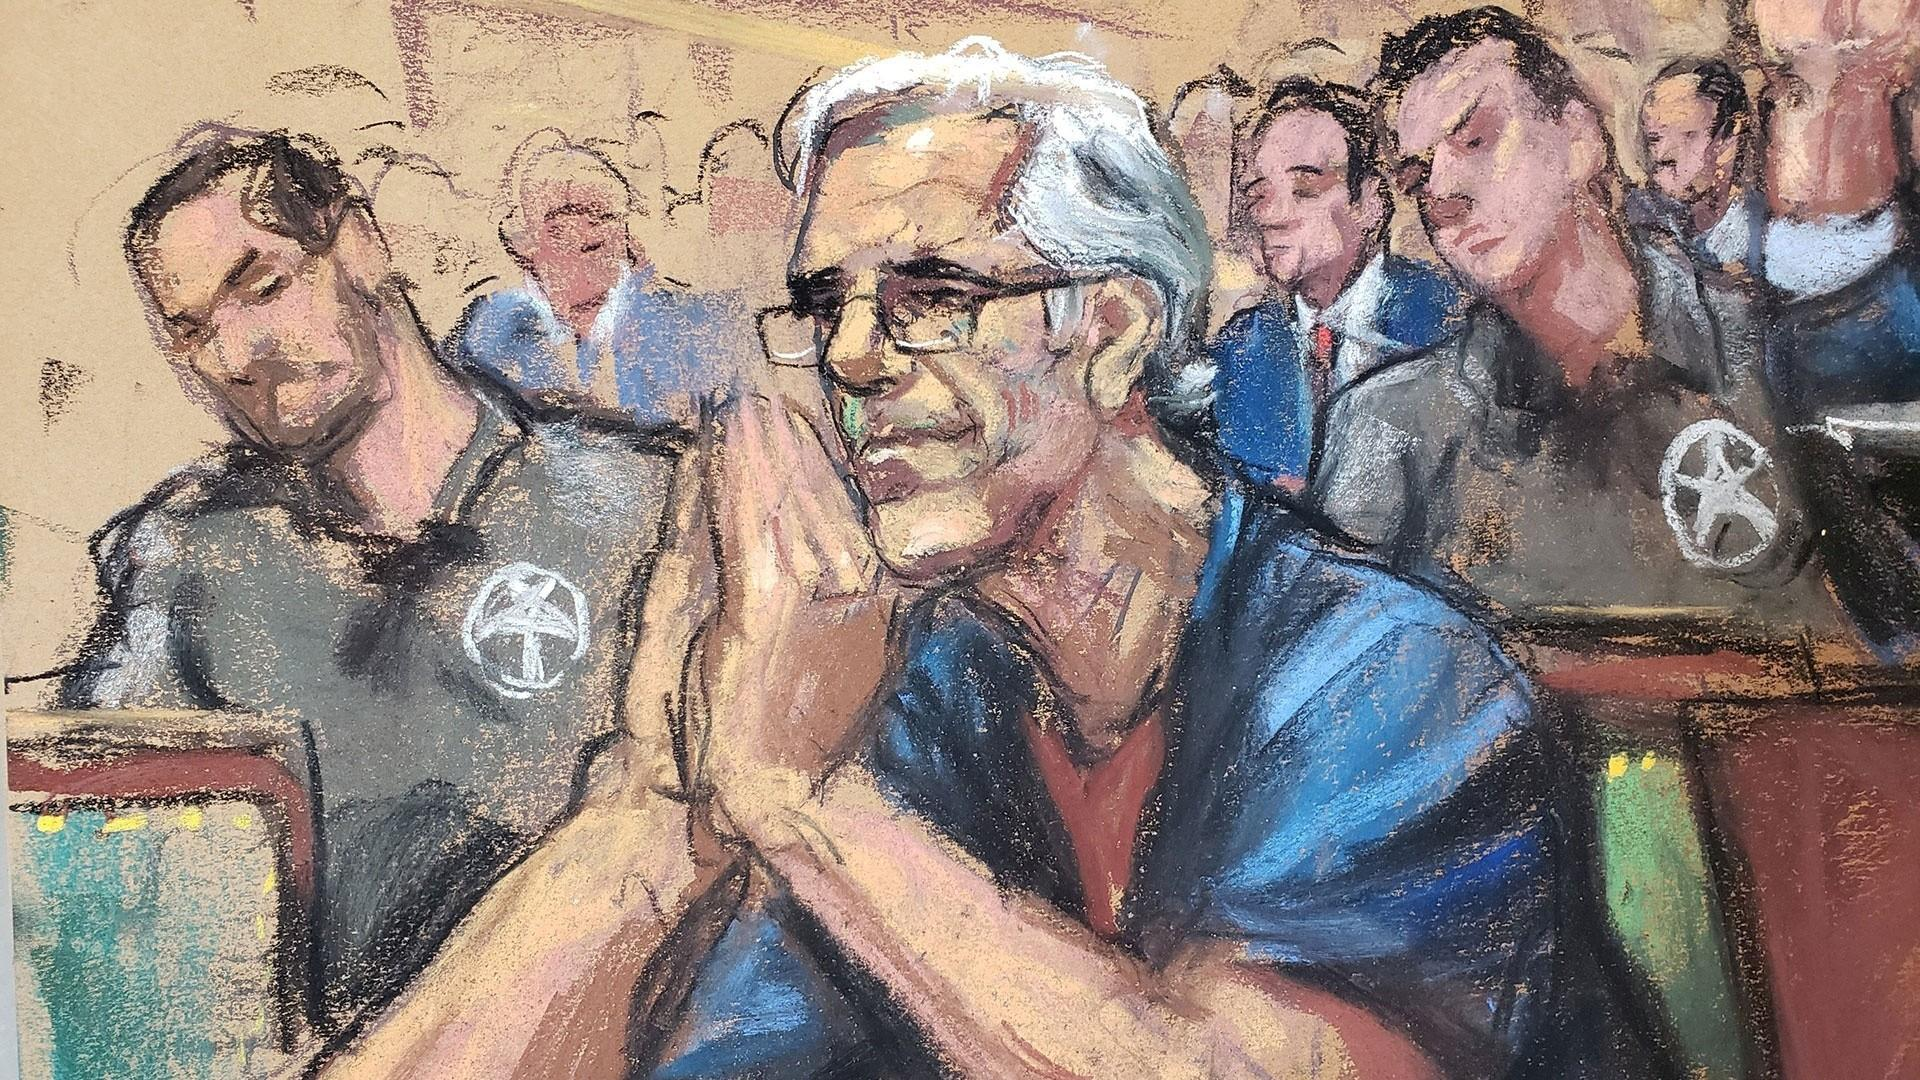 After autopsy, cause of Jeffrey Epstein's death awaits 'further